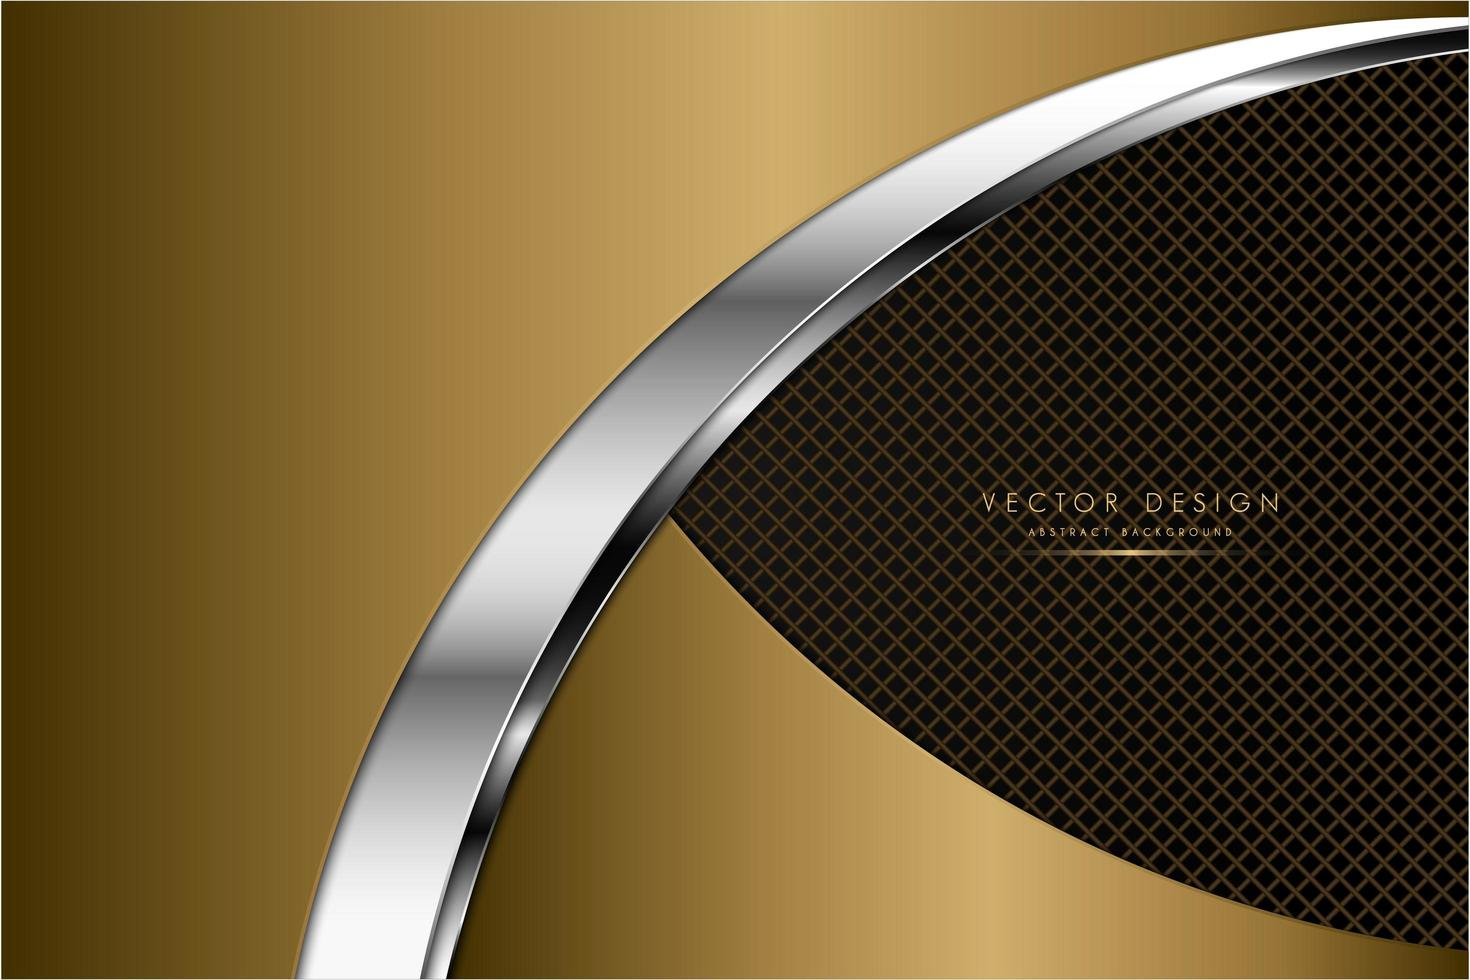 Metallic curved gold and silver plates over grate texture vector